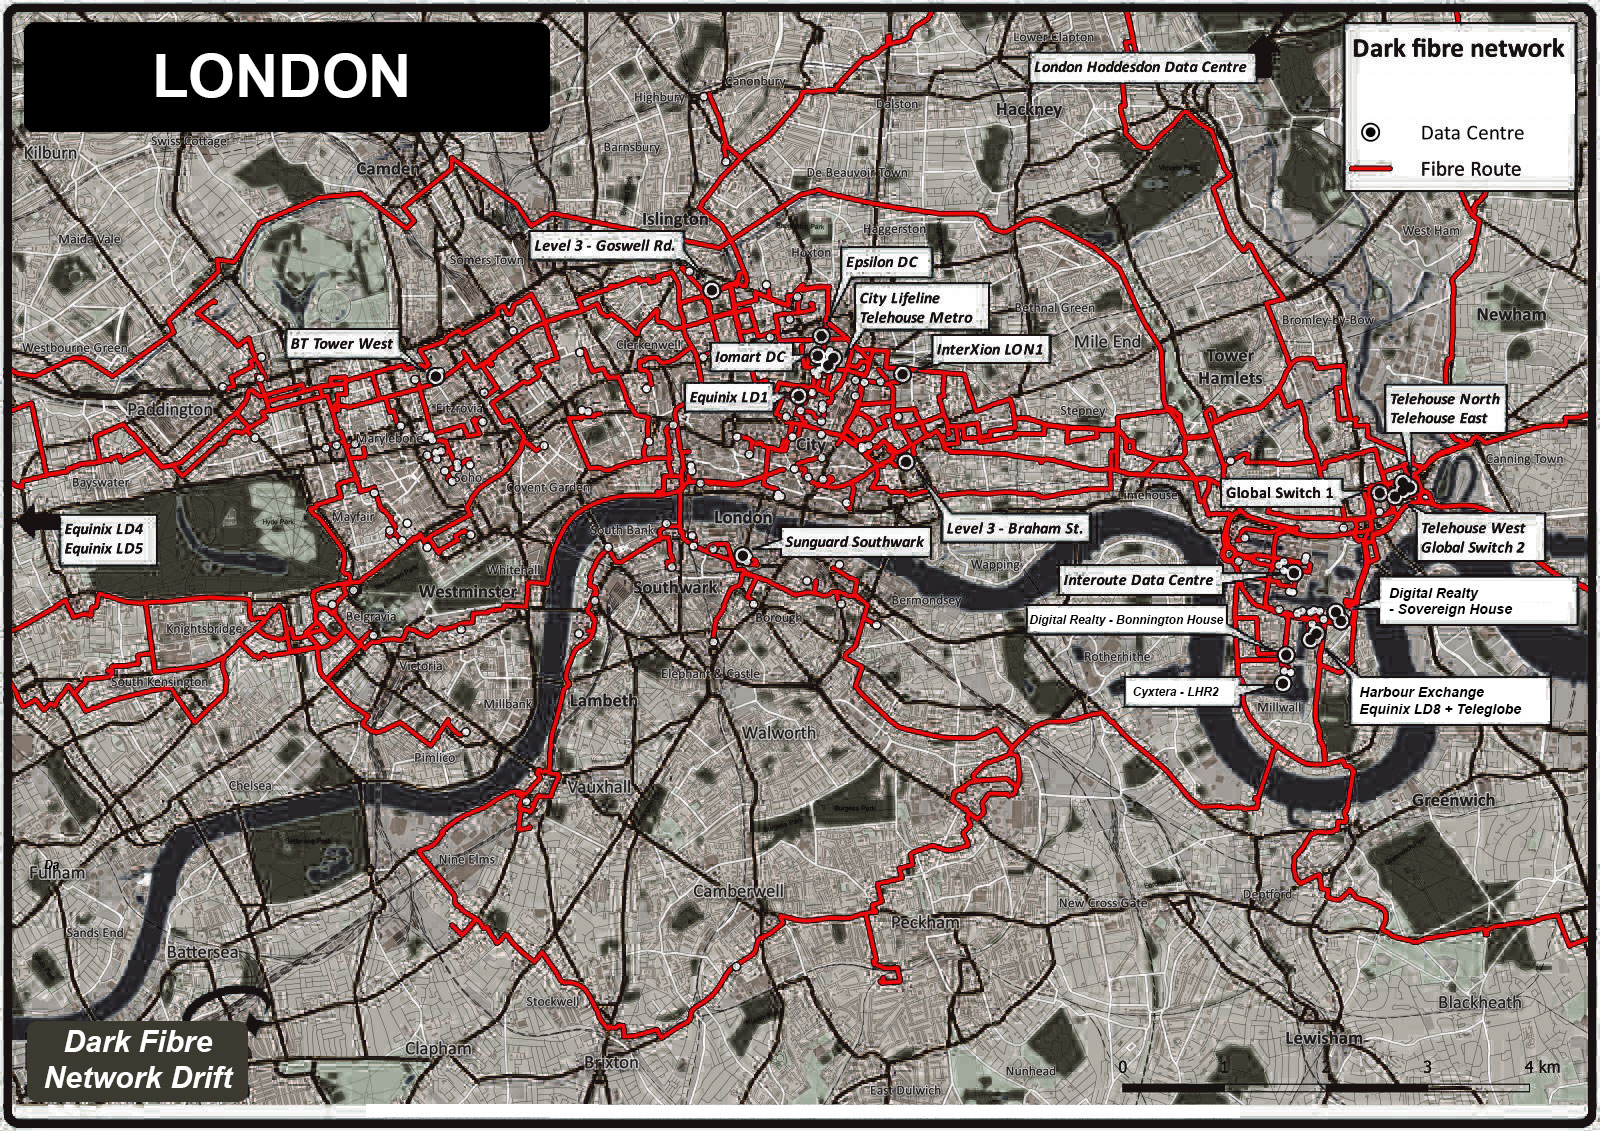 Map of the London Dark Fibre Network